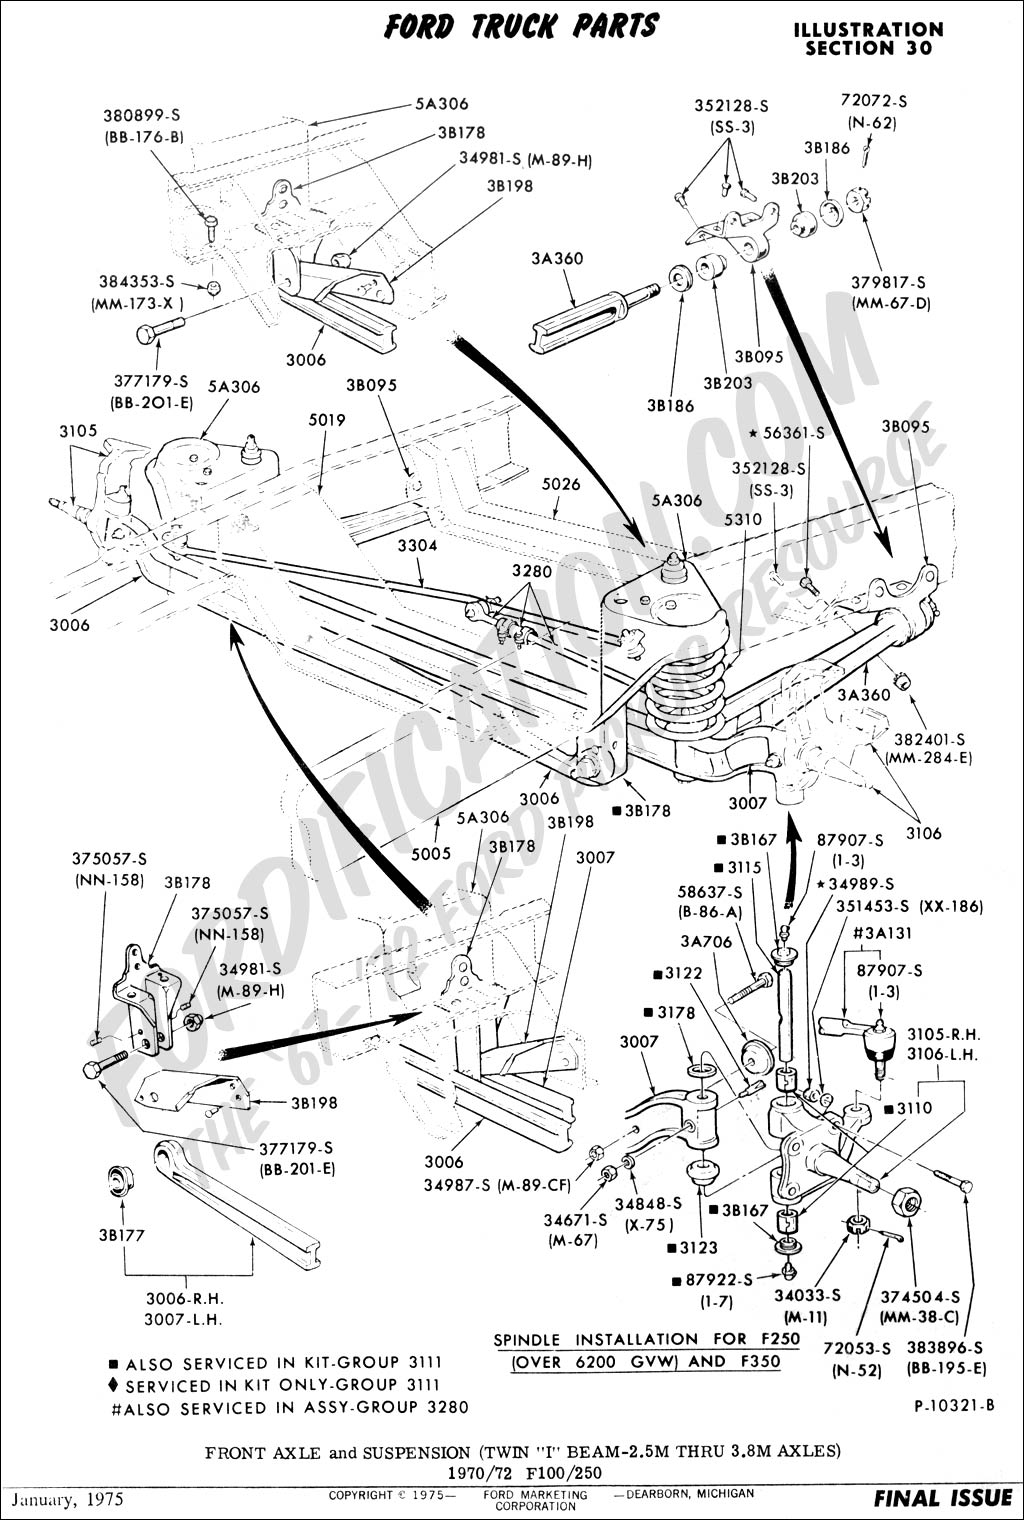 Ford F 150 Front Suspension Parts Diagram